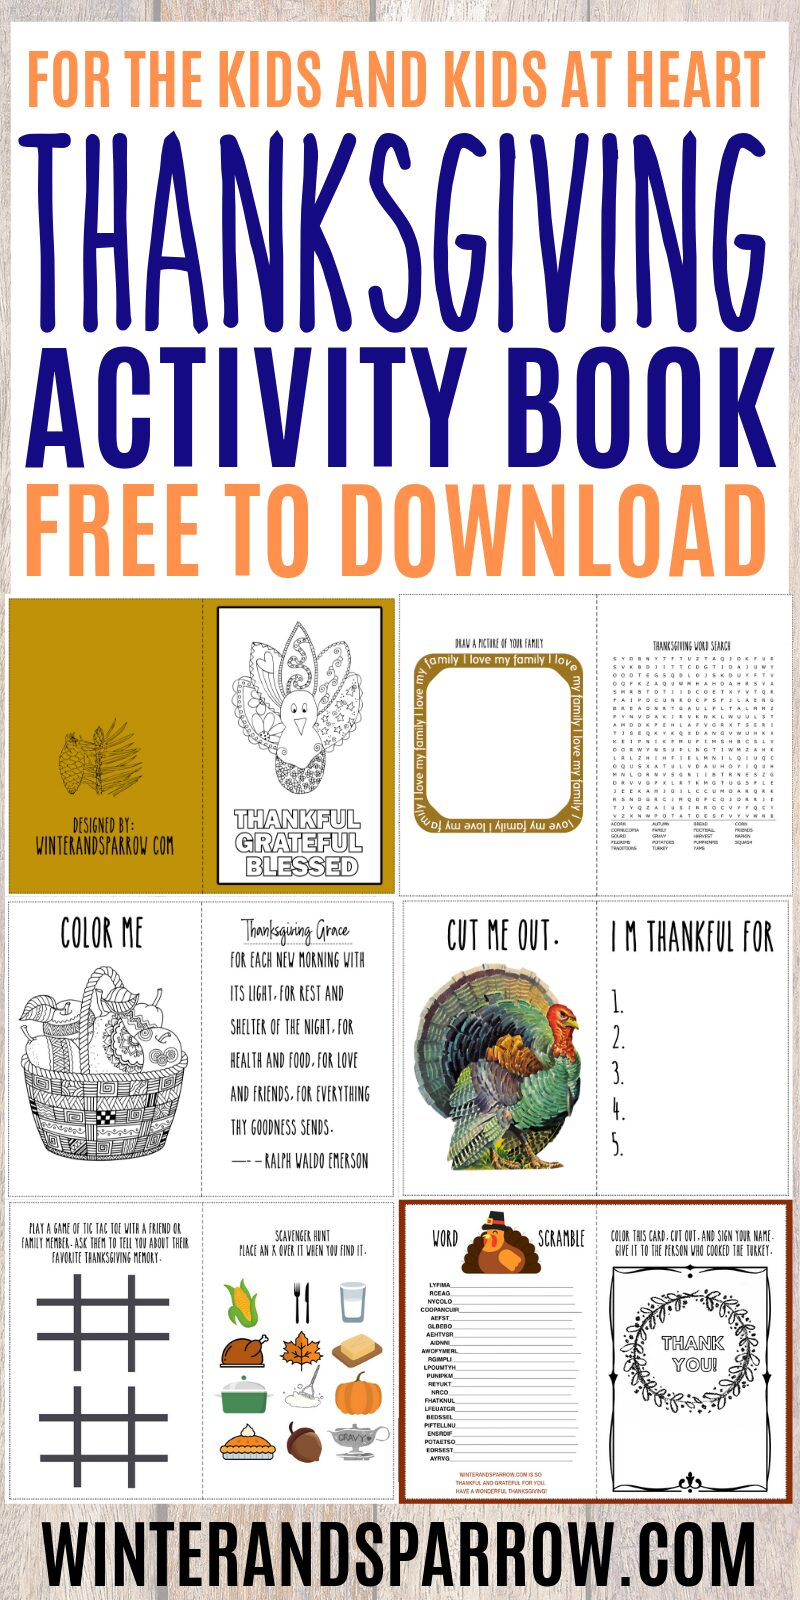 Don't Miss This Thanksgiving Activity Book: 6 Pages Of Printables For Kids + Kids At Heart | winterandsparrow.com #thanksgivingprintables #thanksgivingactivities